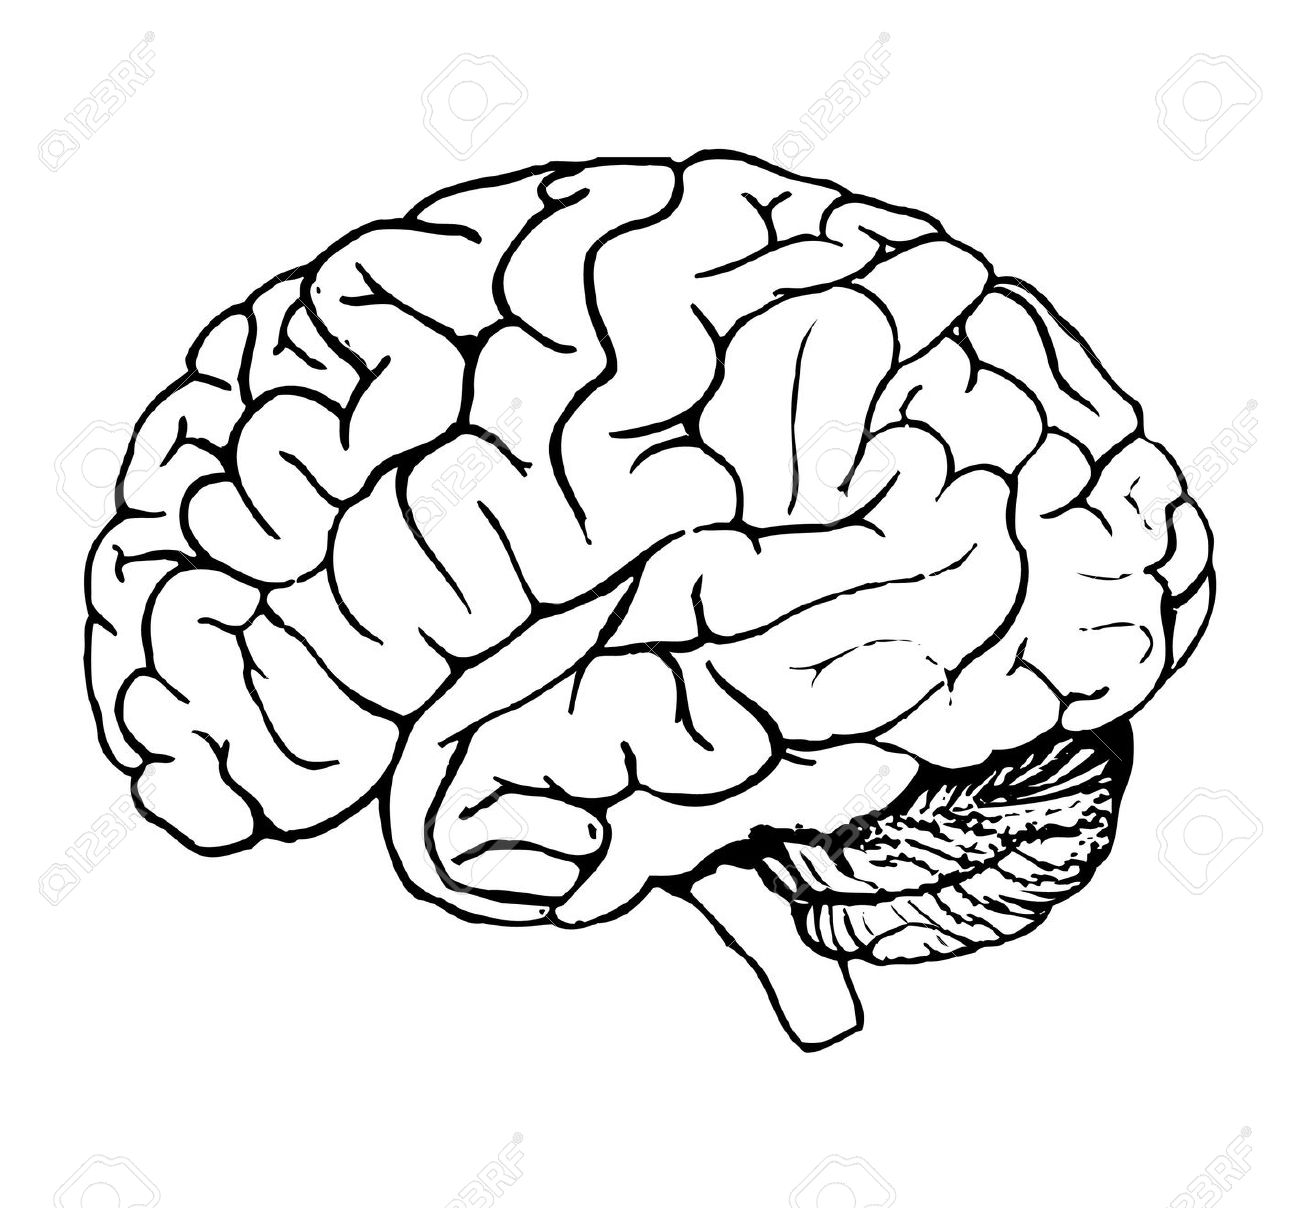 Brain image clipart clipart black and white library Best Brain Clipart #6071 - Clipartion.com clipart black and white library